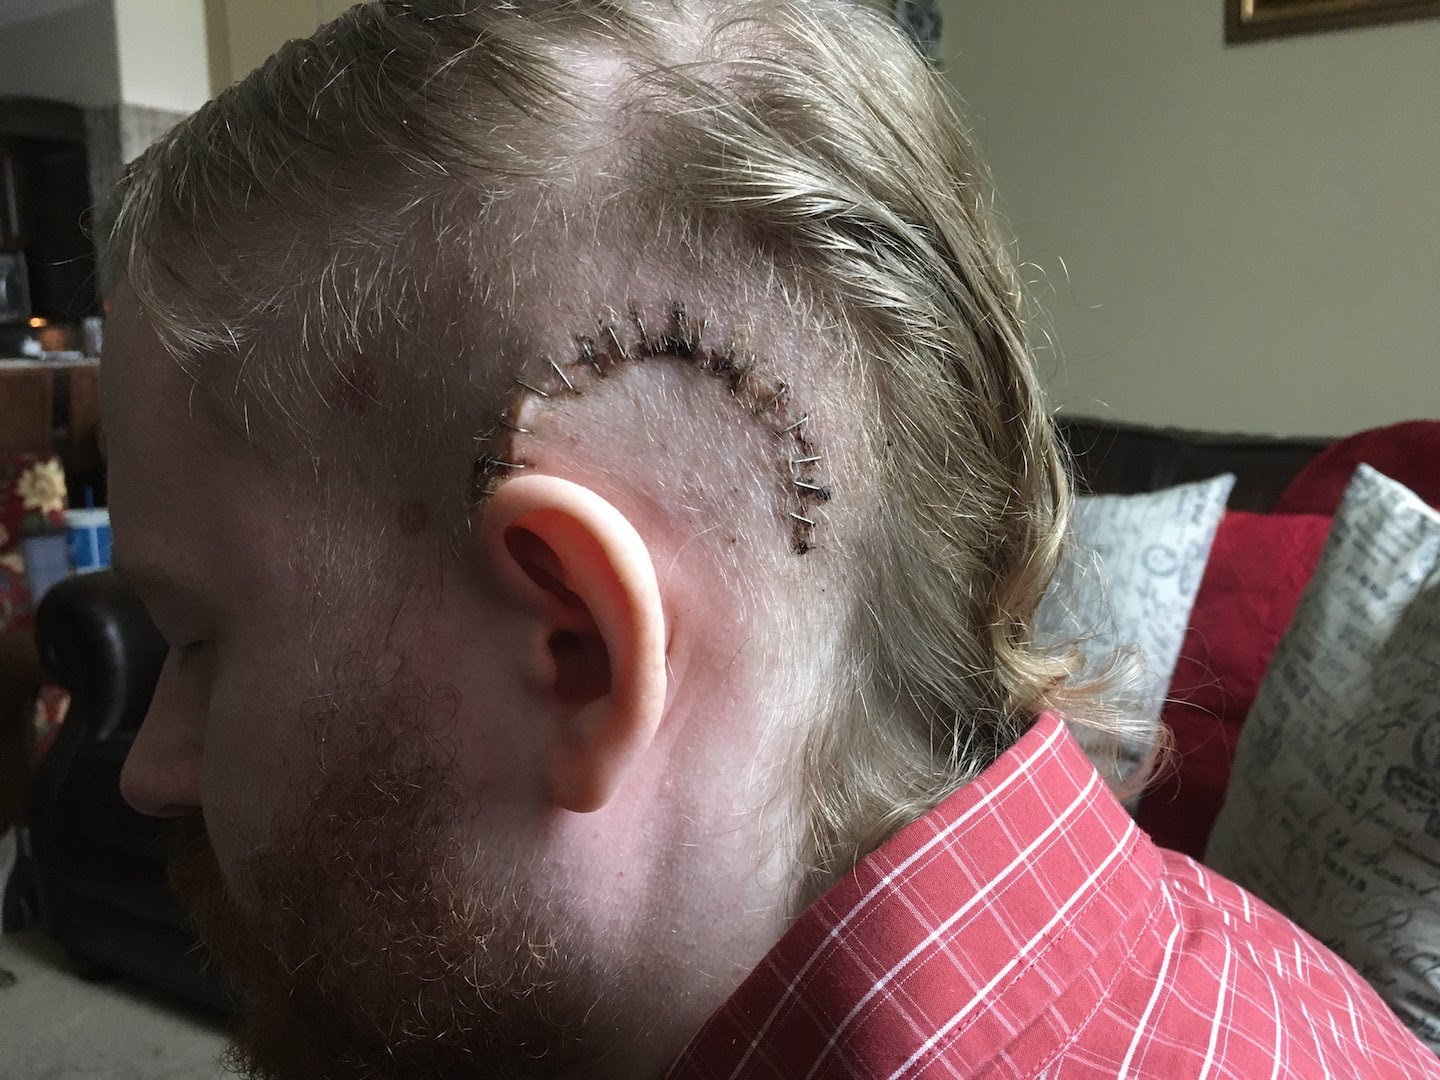 Staples in my skull a couple weeks after my brain surgery.